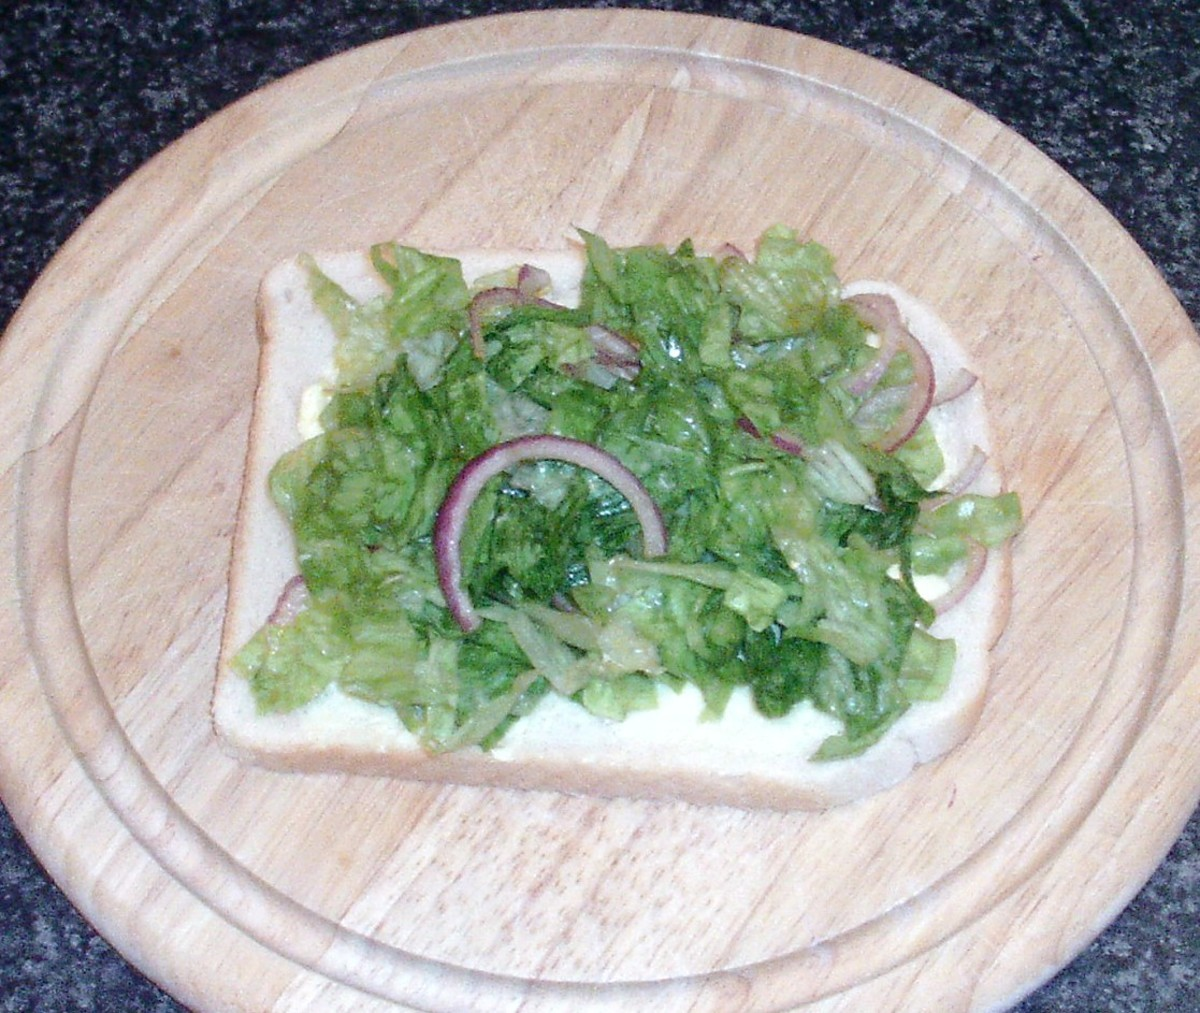 Seasoned salad bed on bread